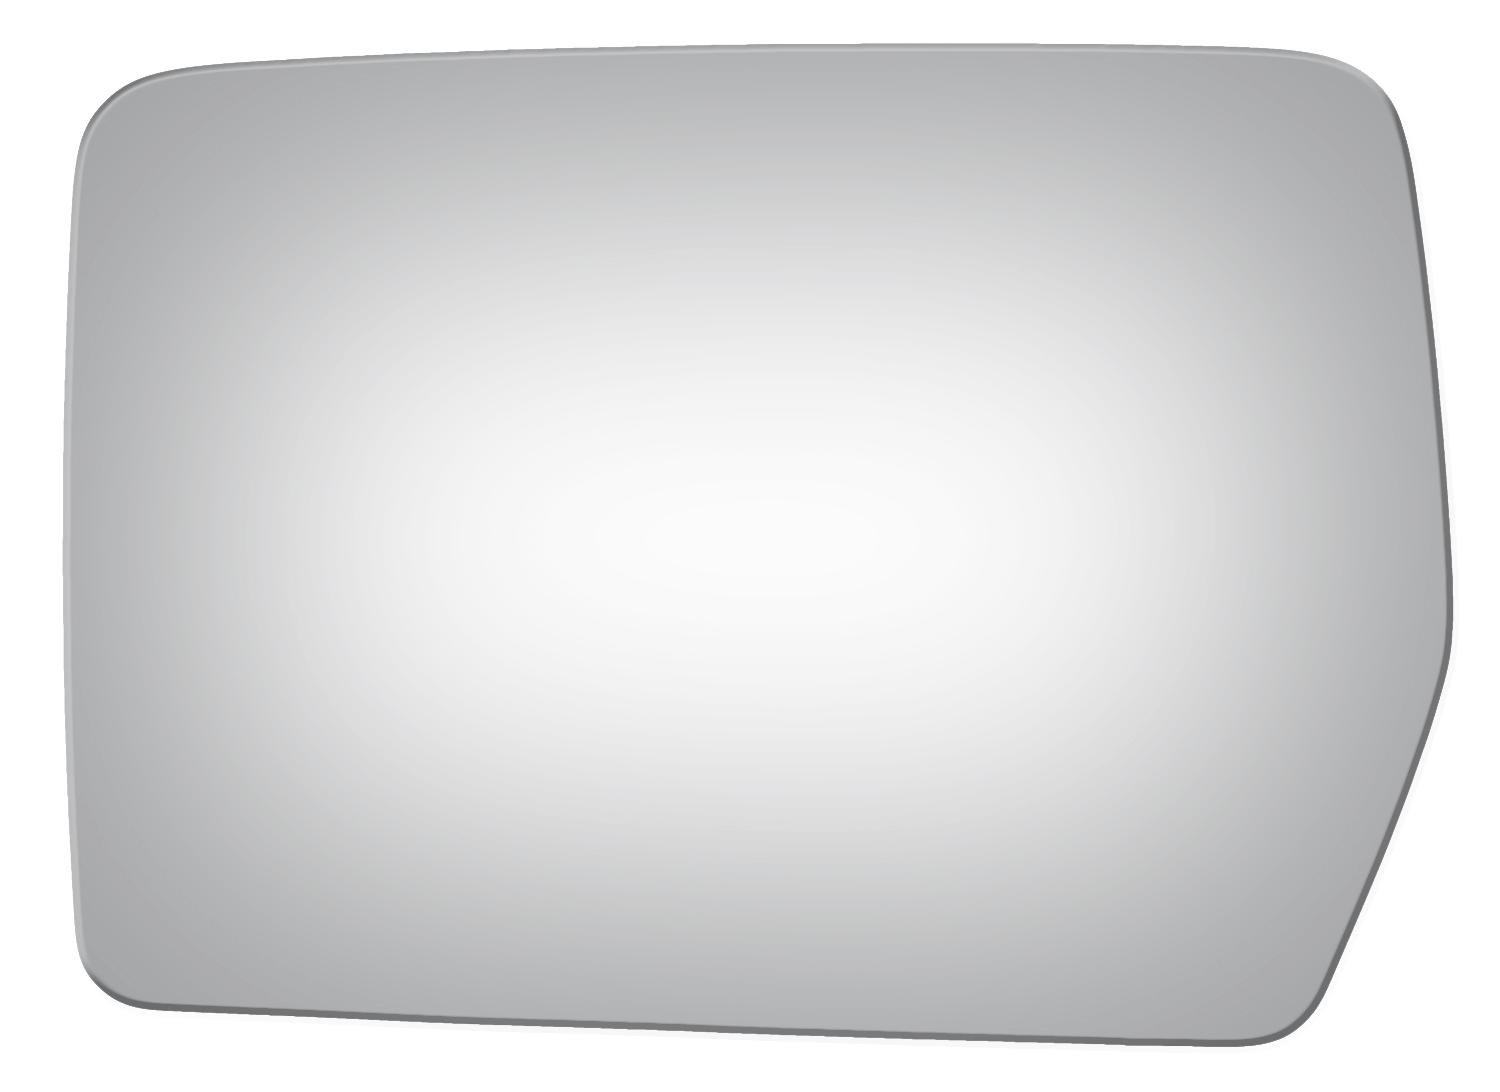 RIGHT DRIVER SIDE HONDA CRV CR-V 2007-2013 SIDE MIRROR GLASS WITH BACK PLATE